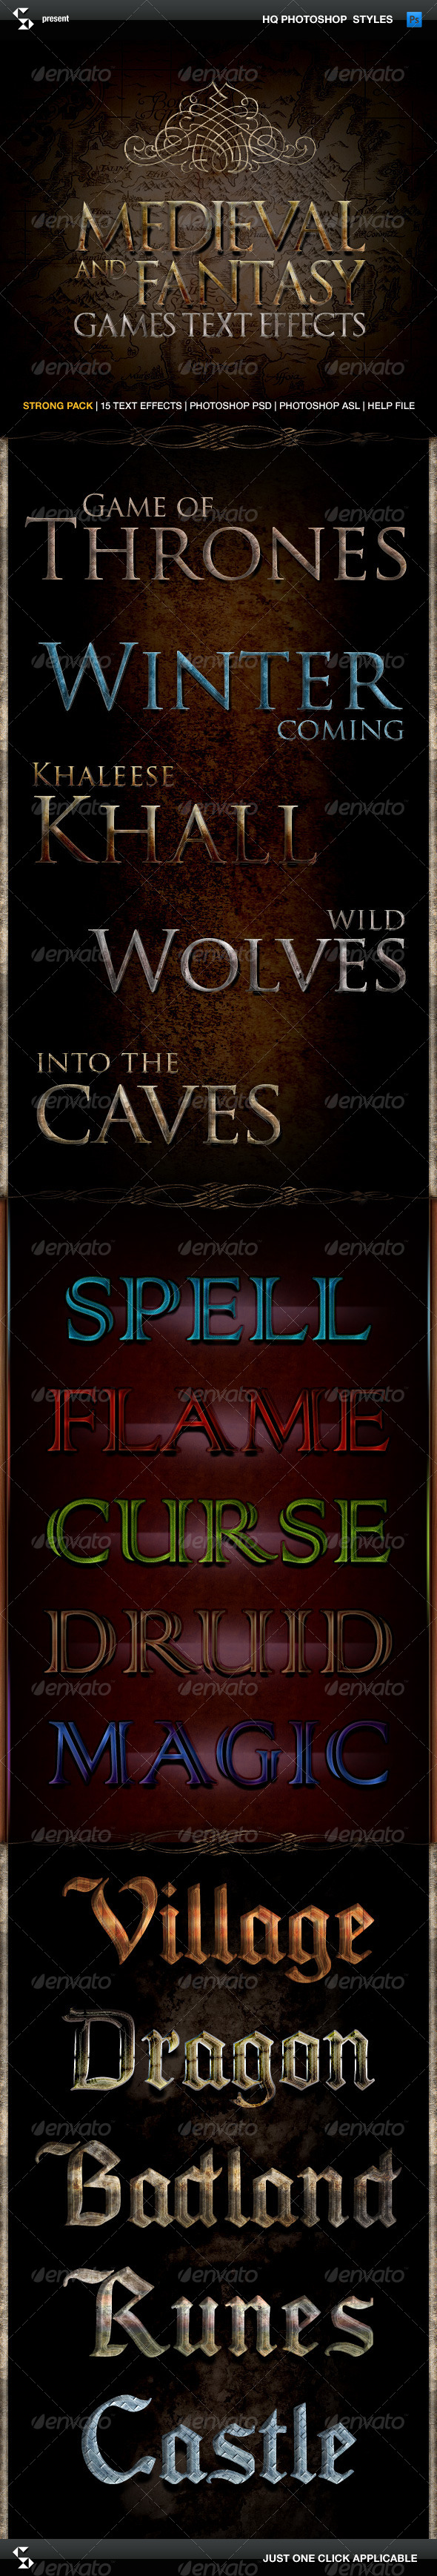 GraphicRiver Medieval and Fantasy Games Text Effects 5852987